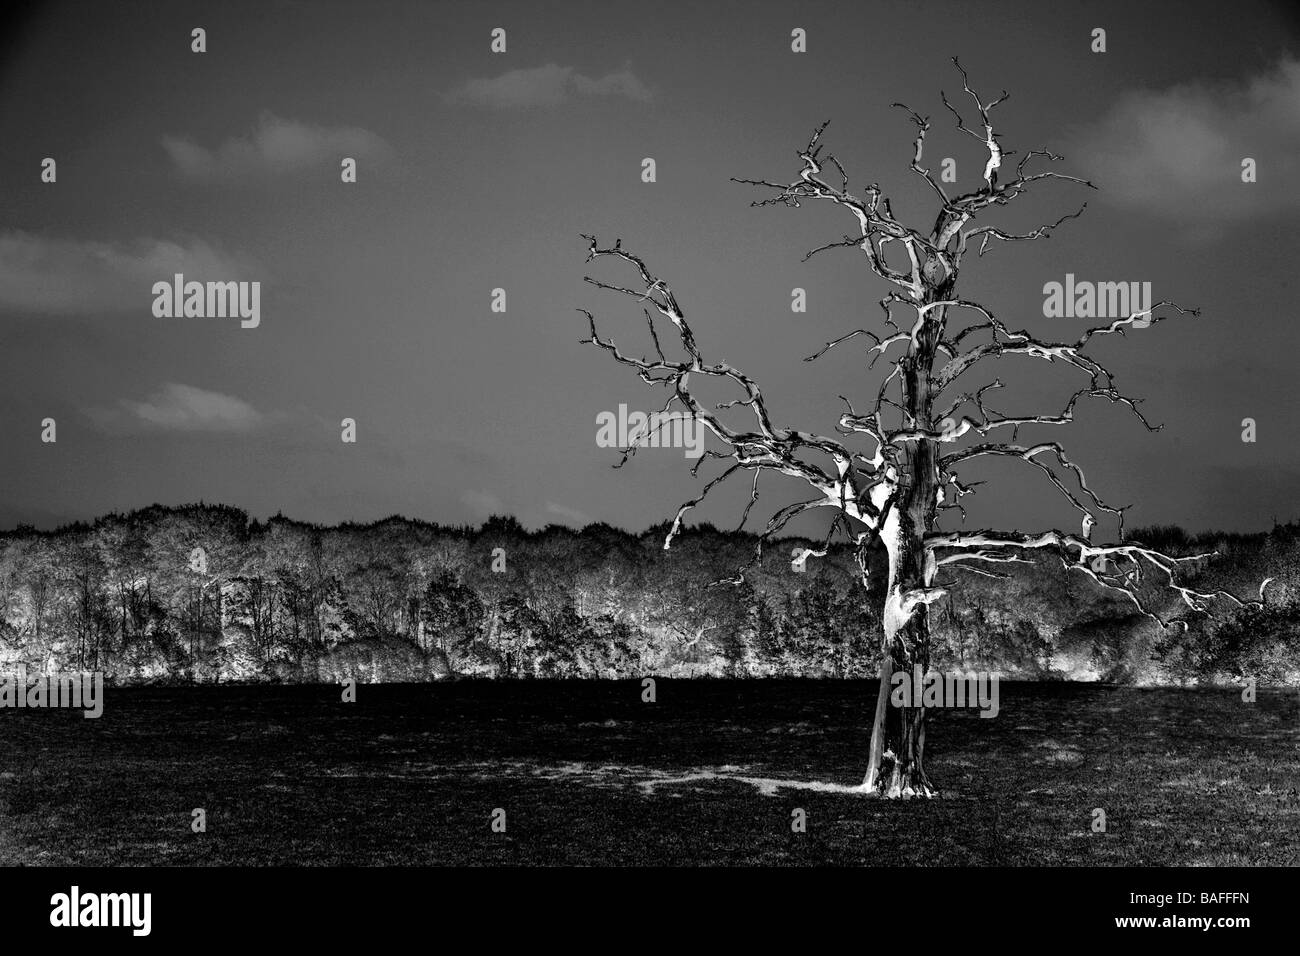 A surreal sabatier image of a single tree in a field. - Stock Image